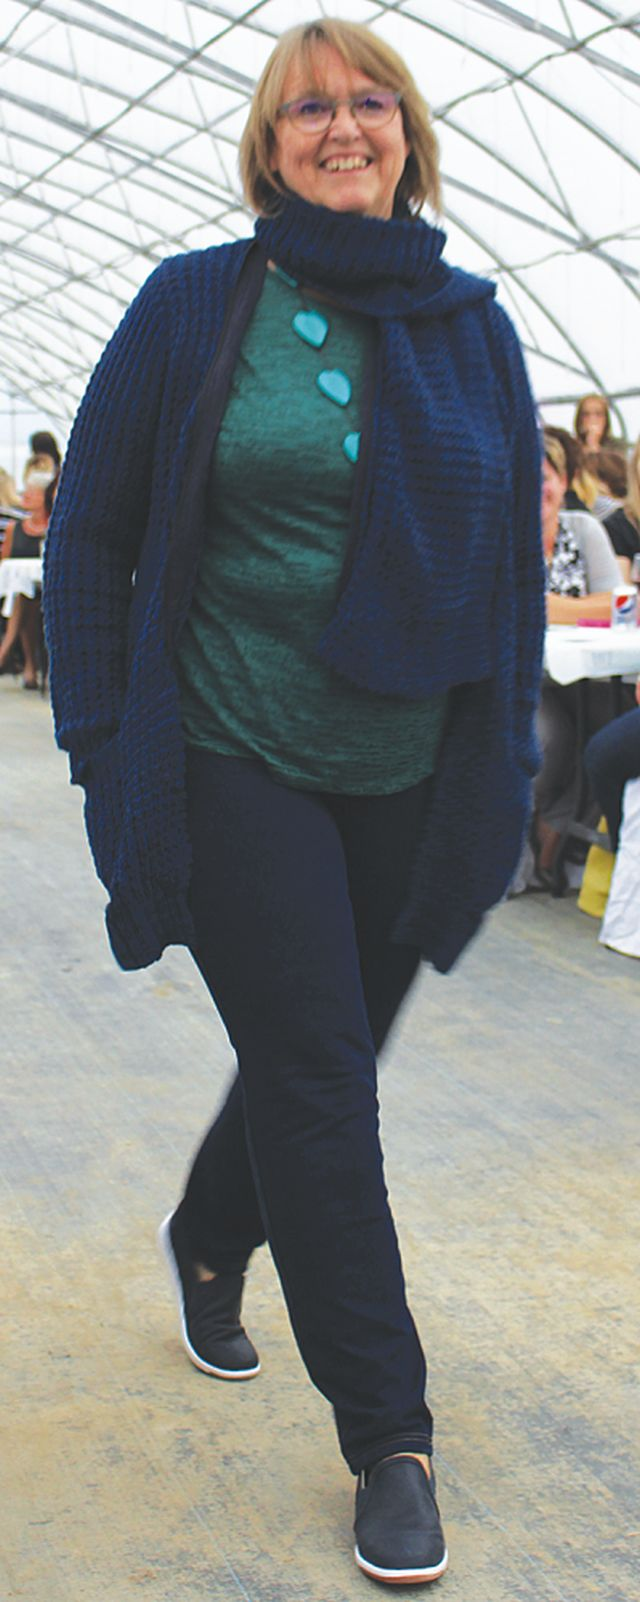 Cathy Wilcox struts her stuff in this casual fall get up with a matching cardigan and scarf.